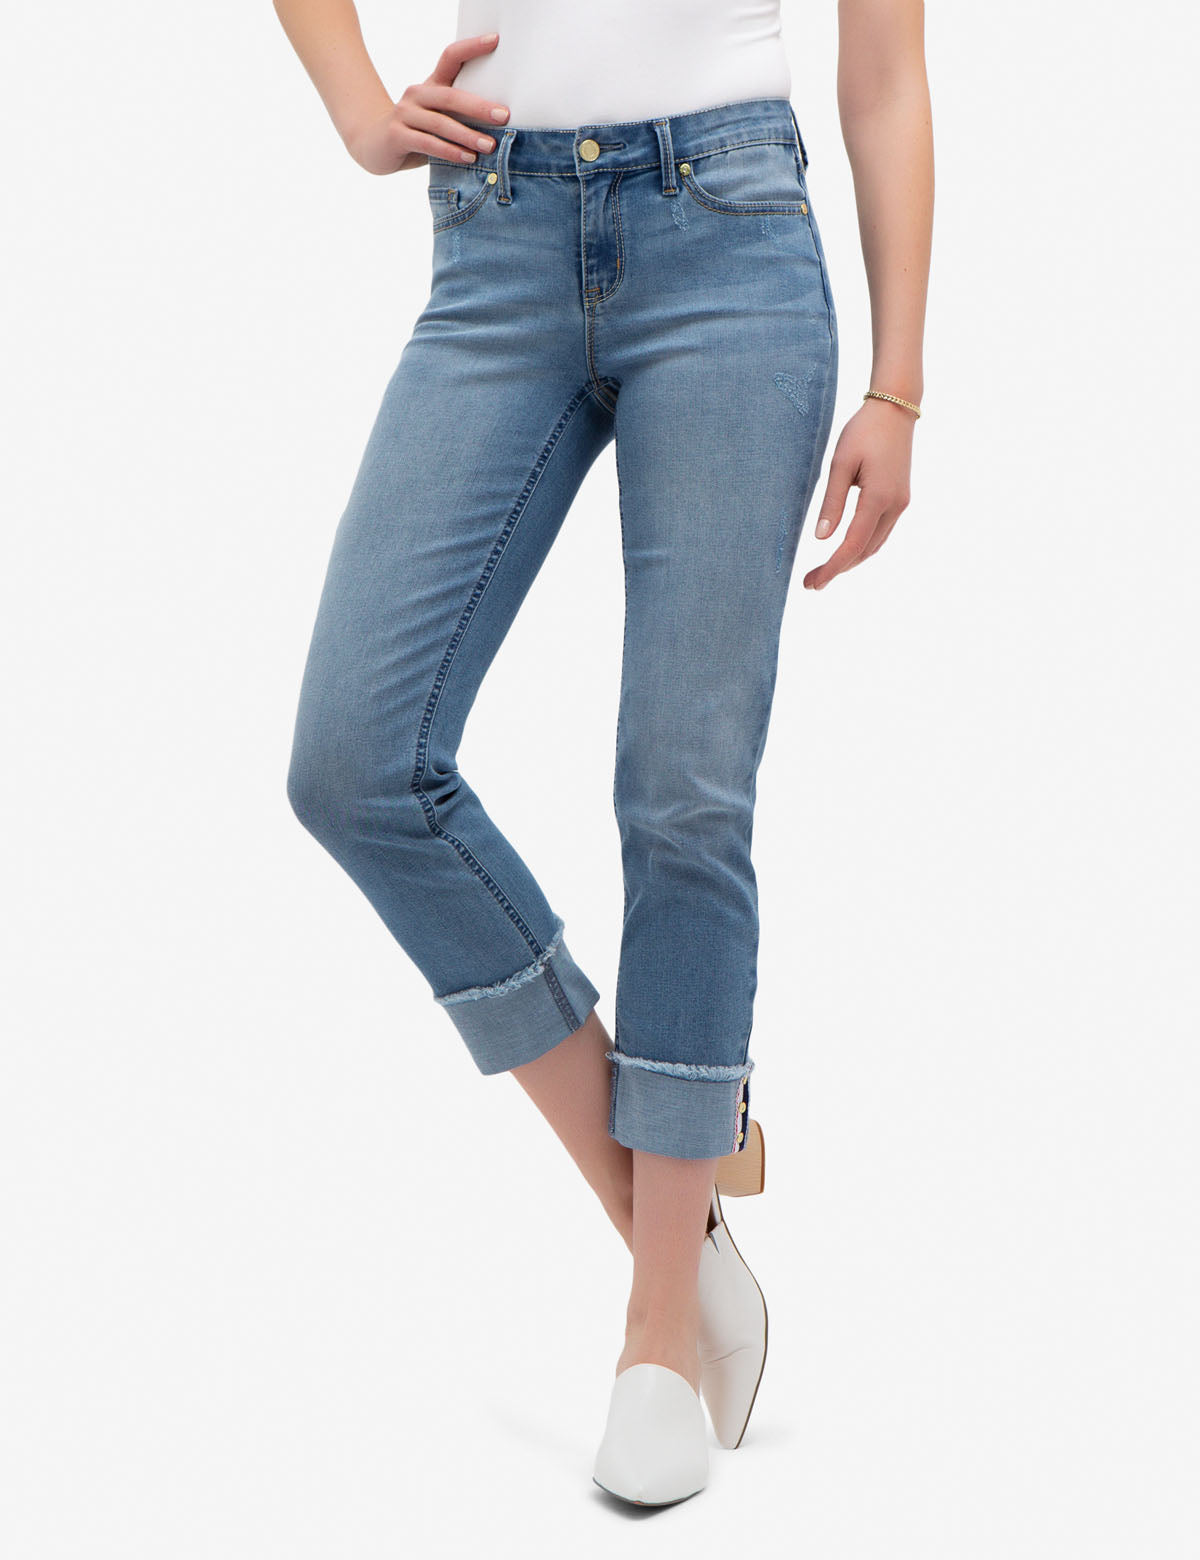 REPREVE® MID RISE RELAXED WIDE CUFF JEANS WITH CUFF DETAIL